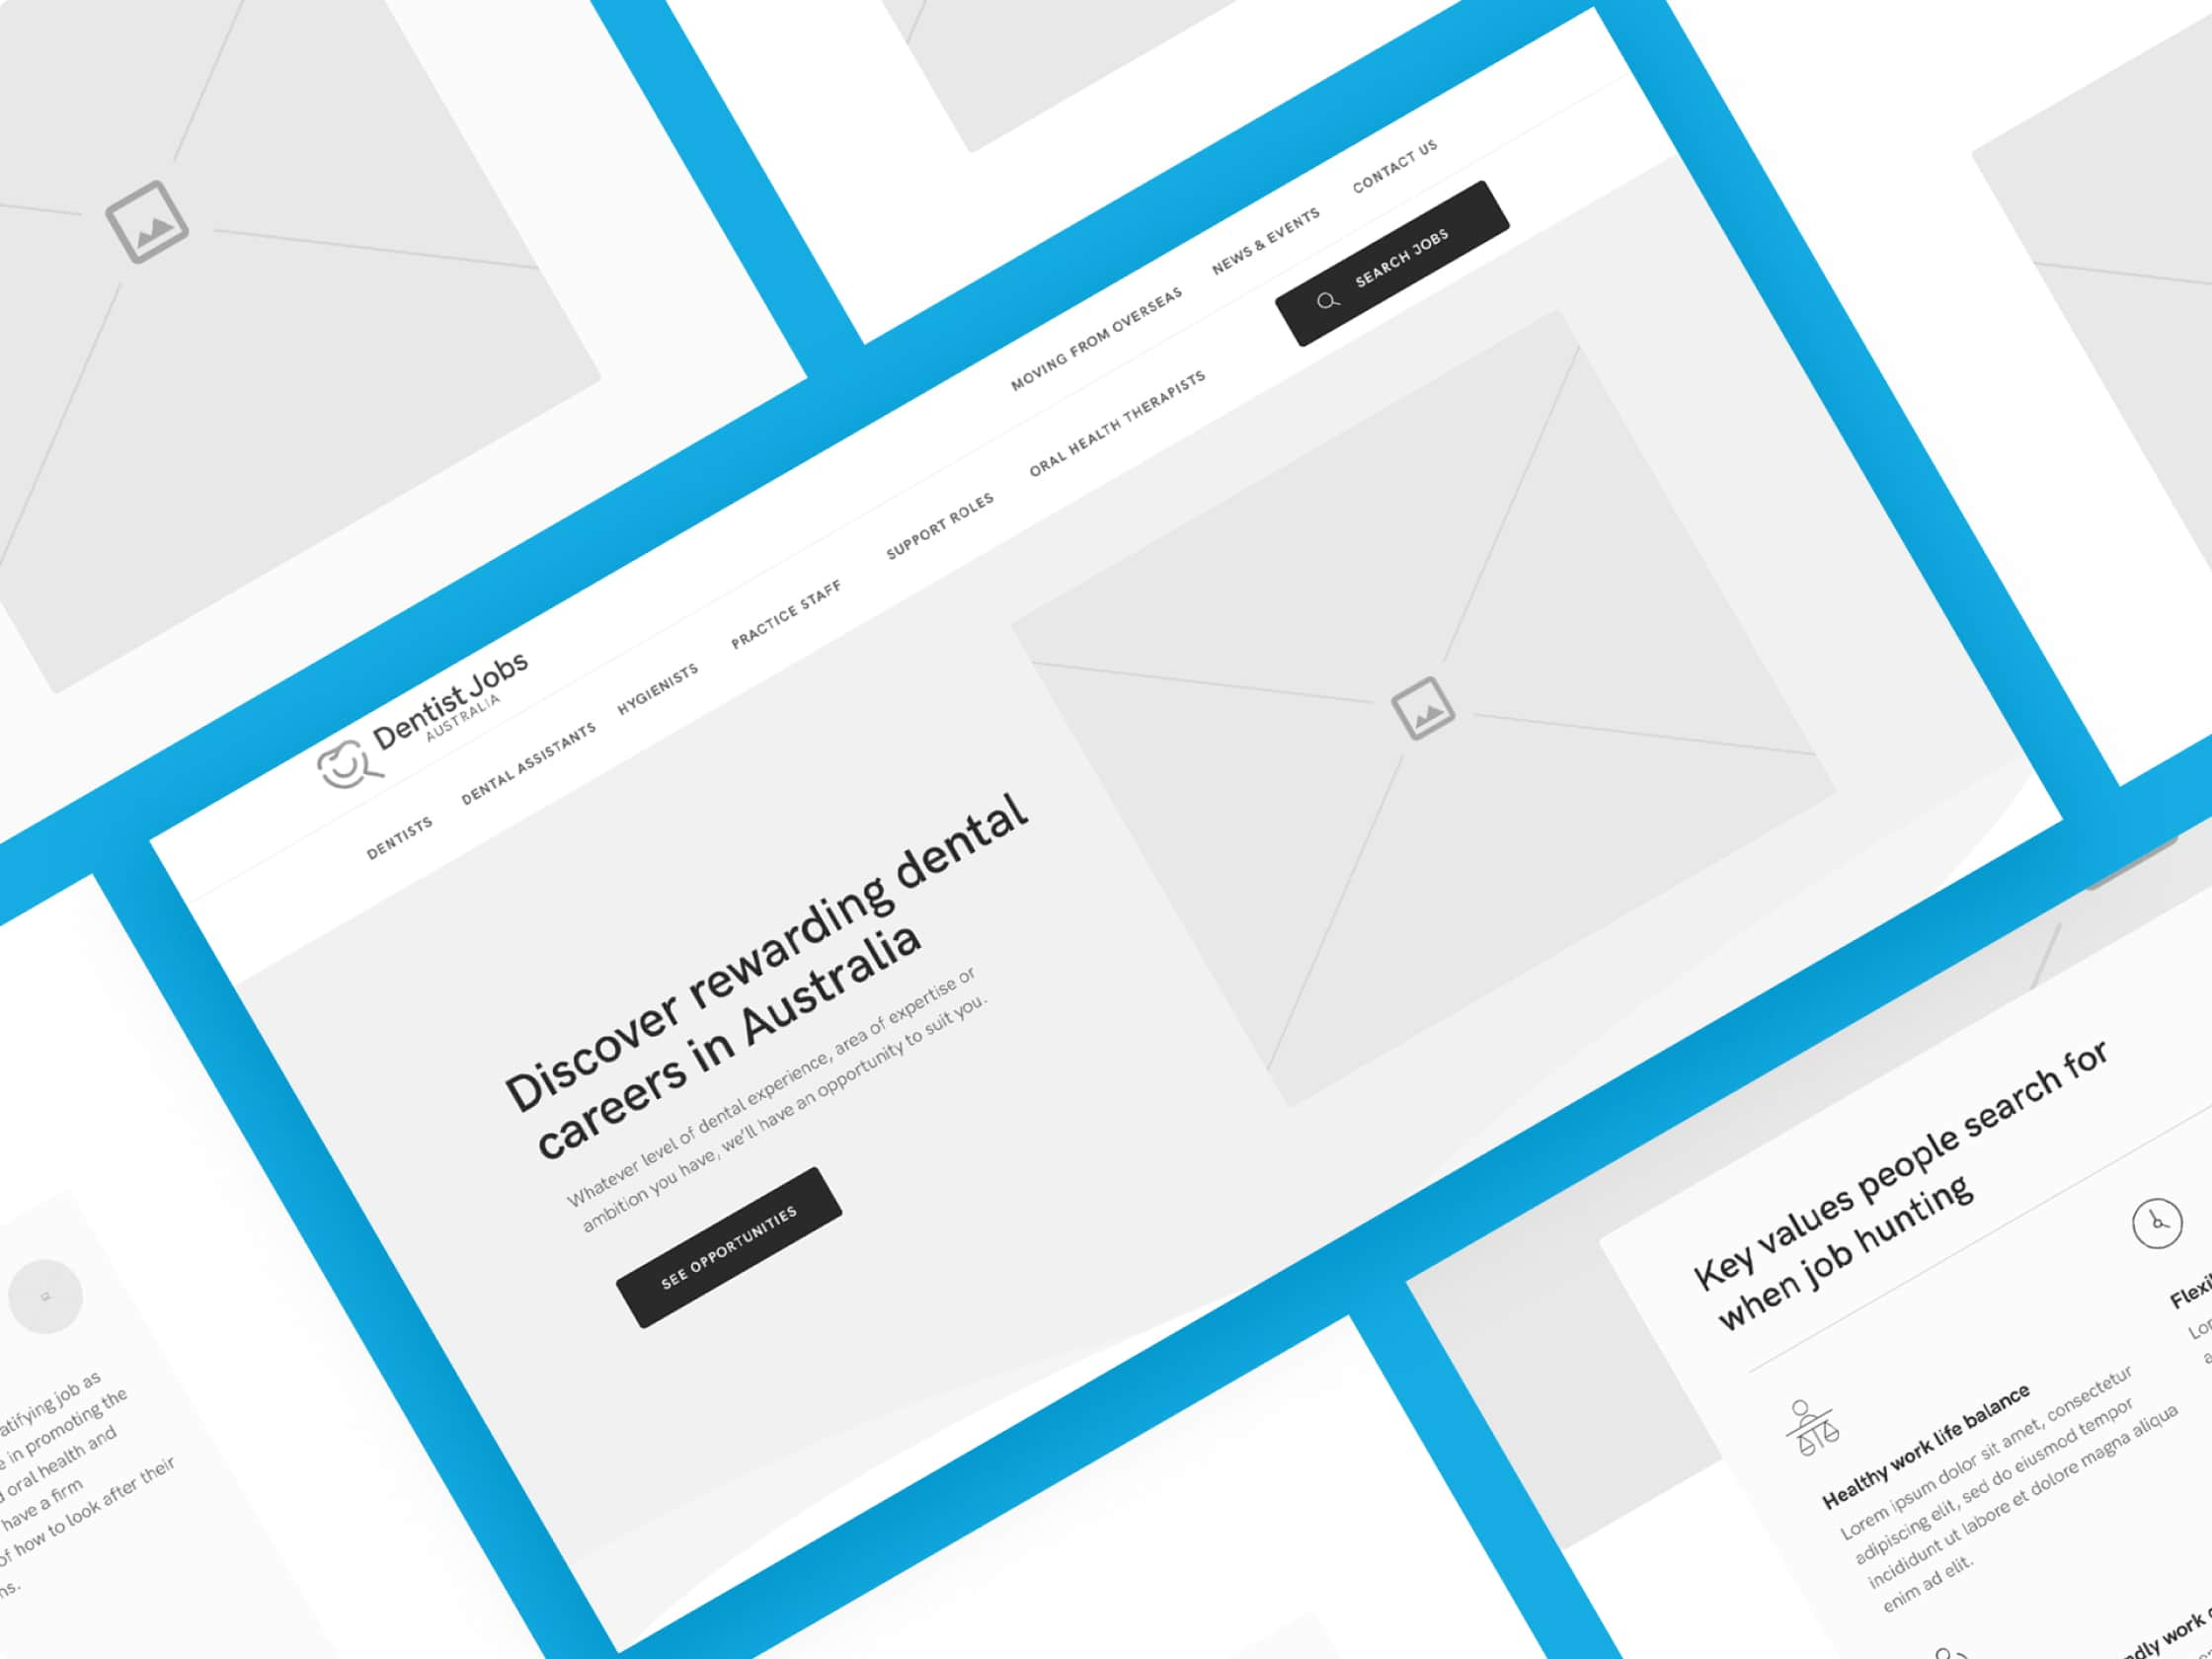 Wireframe of the website